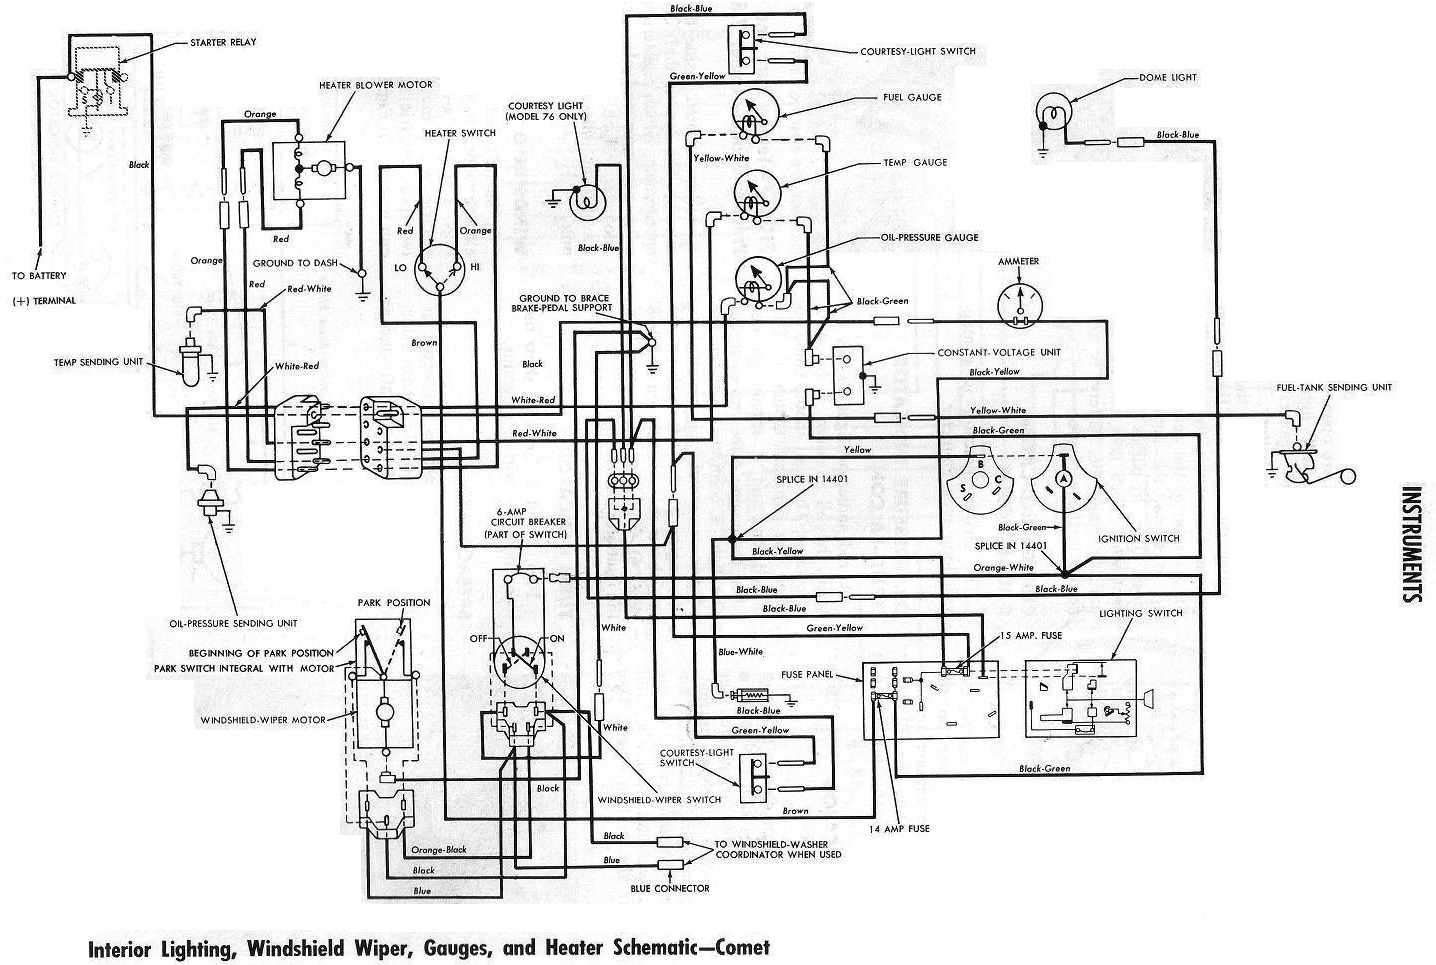 1970 chevy nova wiring diagram pdf